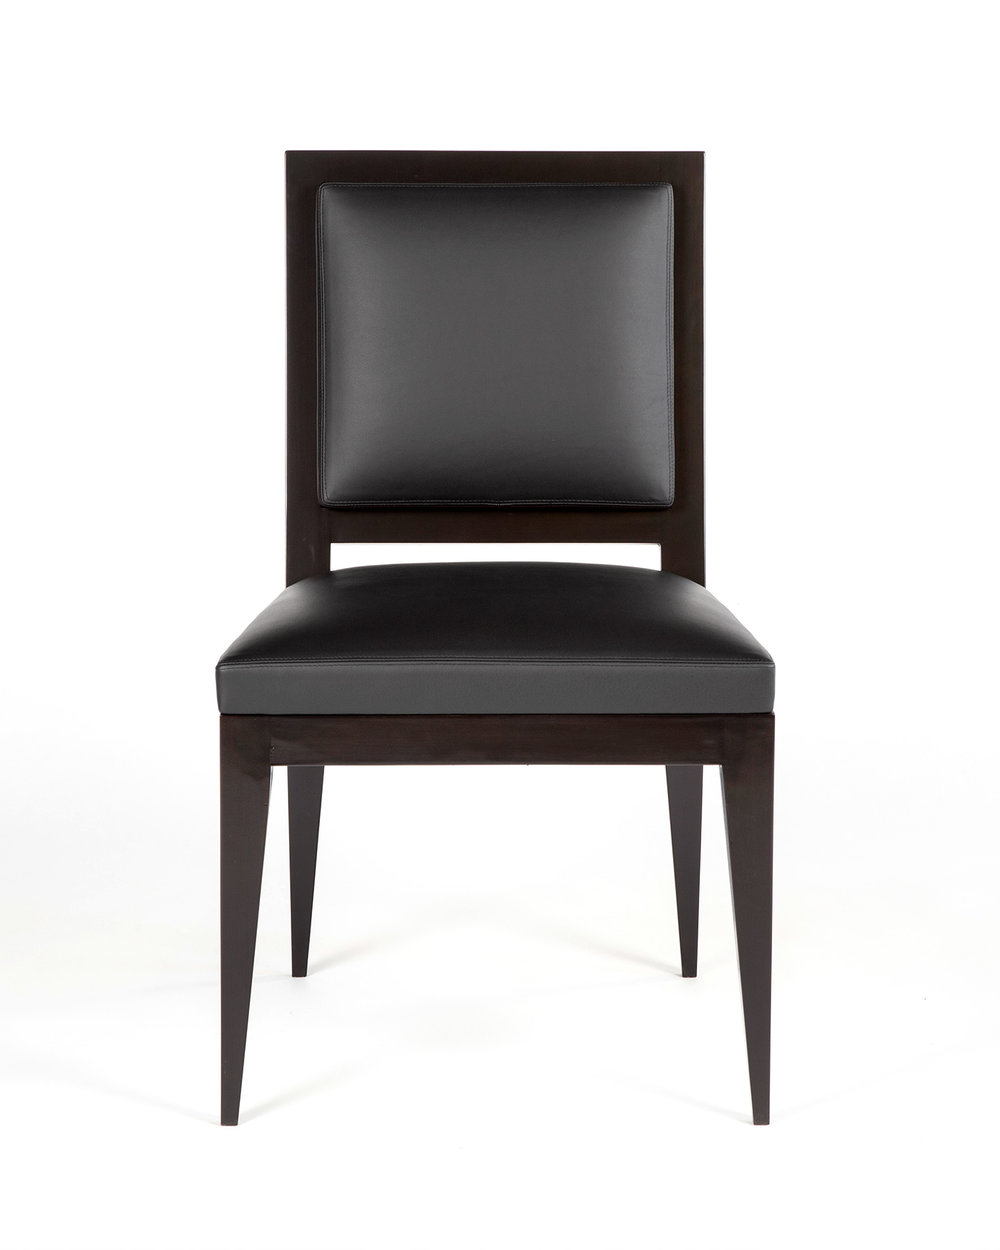 Carre_Side_Chair_002.jpg